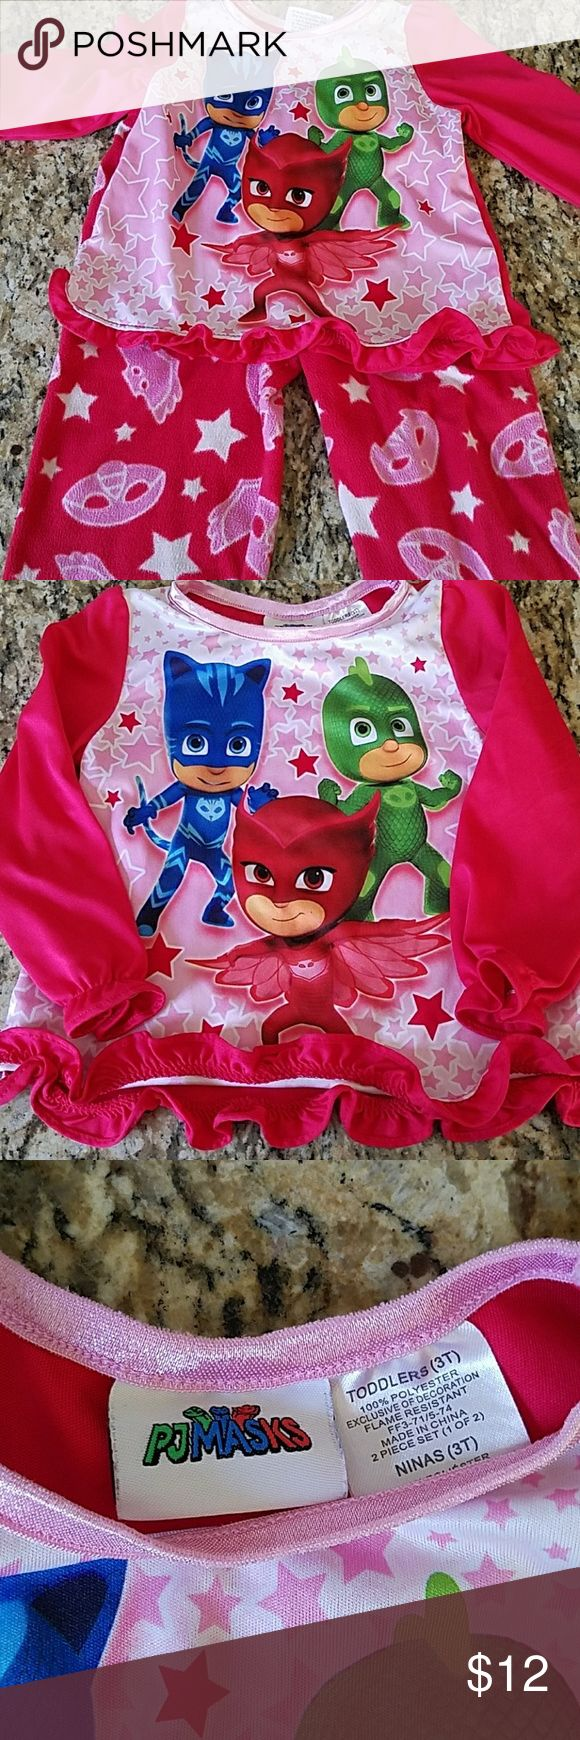 PJ Masks pajamas!!! Fleece pants, long sleeve top. Keeps warm at night PJ masks Pajamas